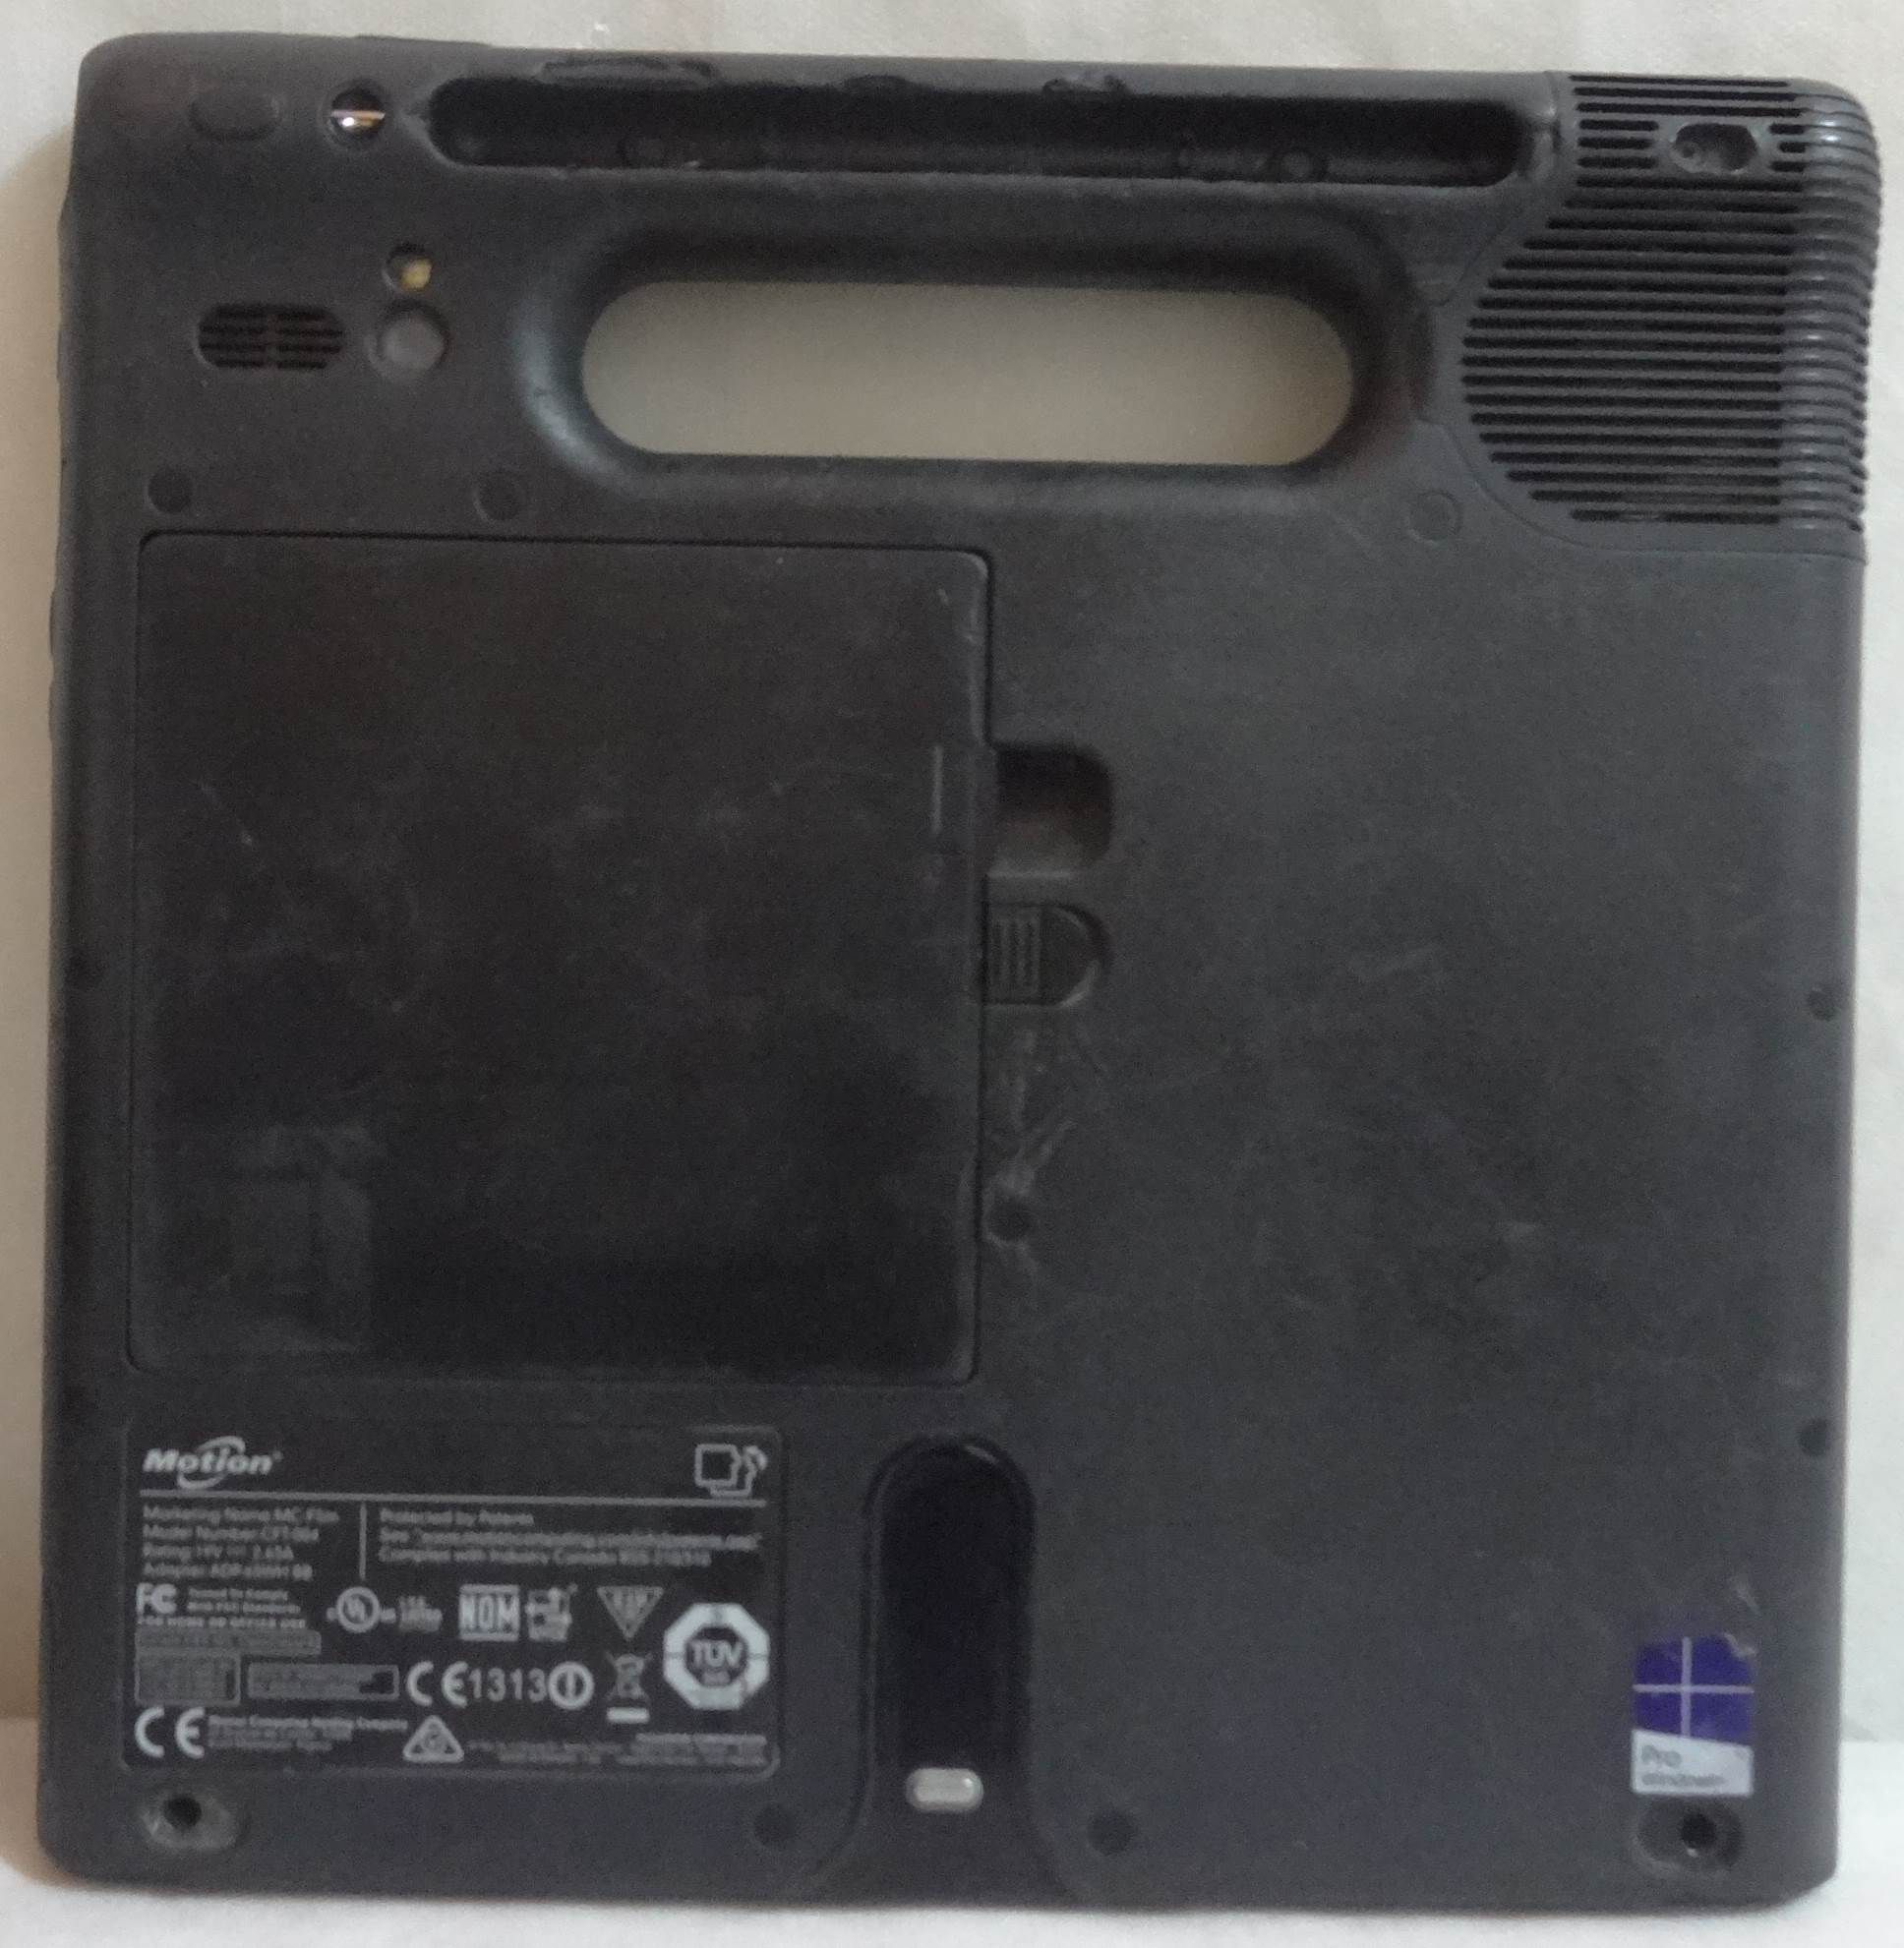 Tablet Motion Rugged mc-f5m 10.4